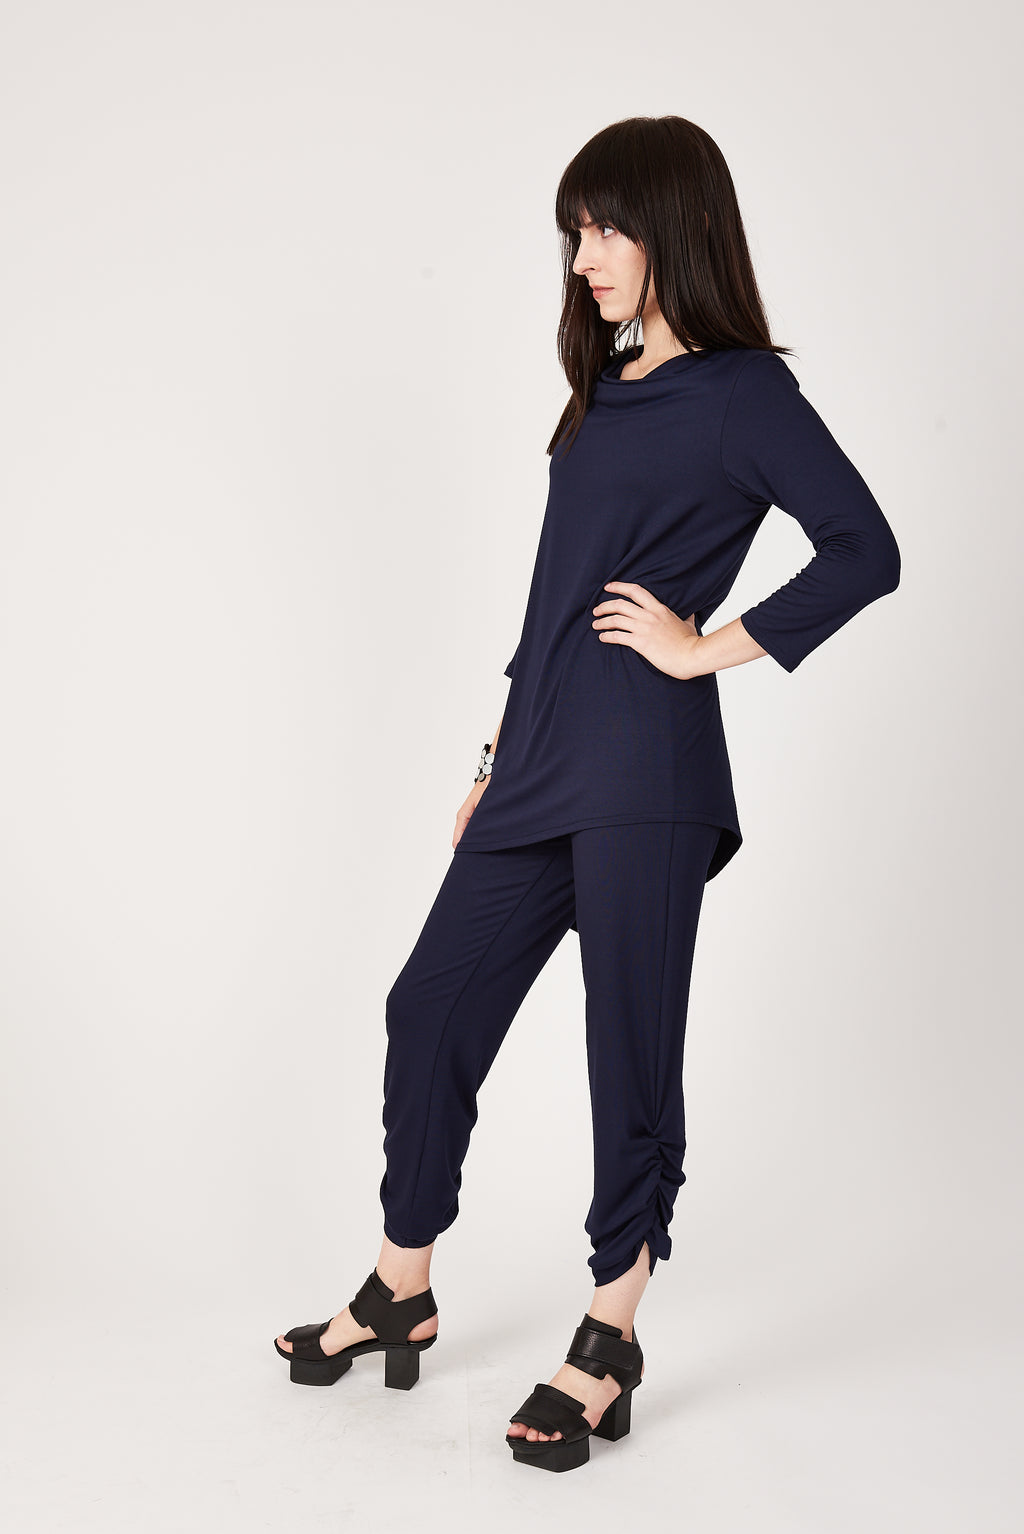 3/4 Sleeve Trapezoid Tunic in Midnight Navy